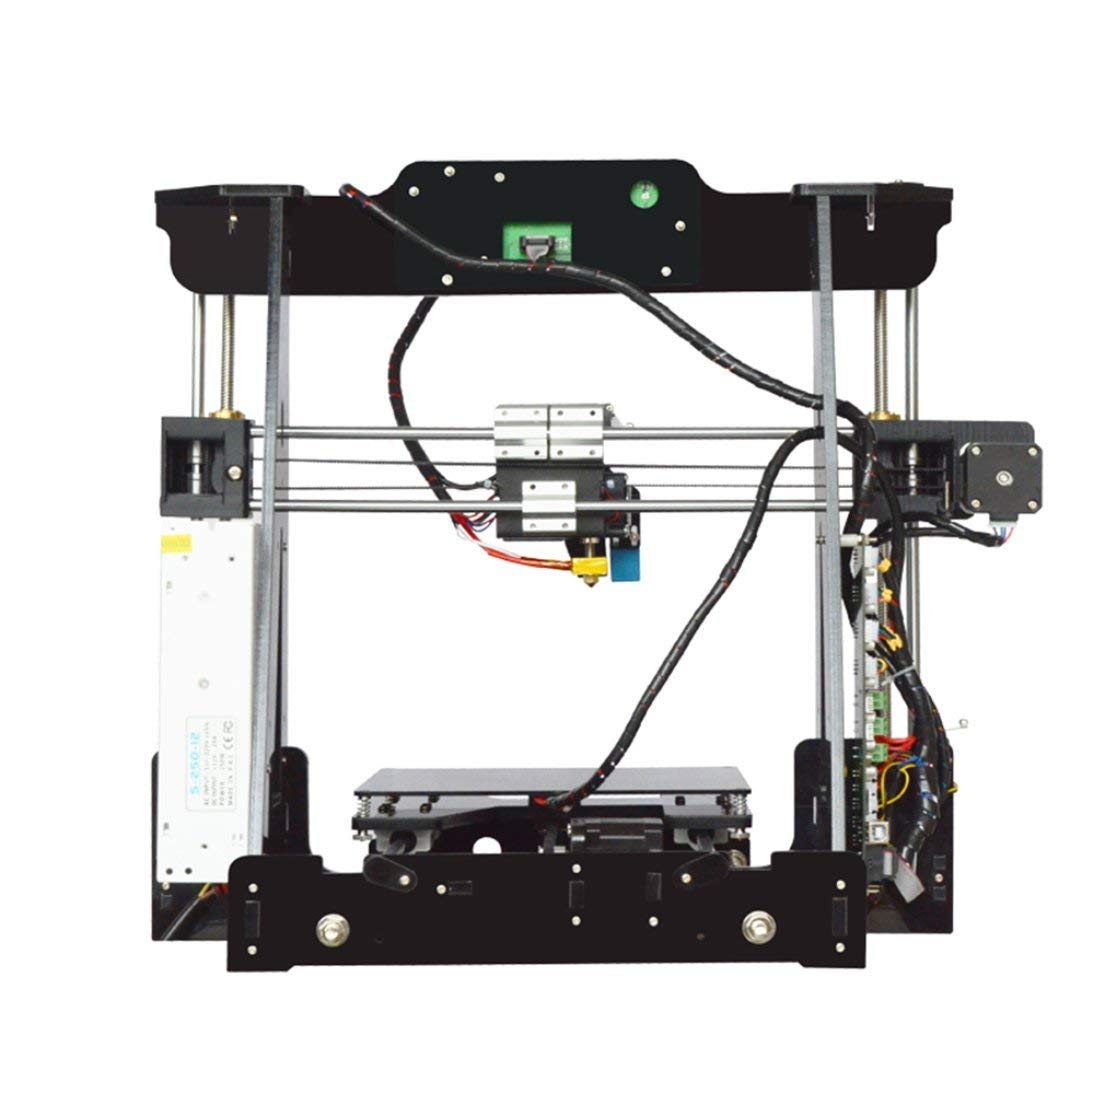 Portable DIY 3D Printer Kits Educational Desktop 3D Printer Print Size 220x220x240mm Full Metal Kits